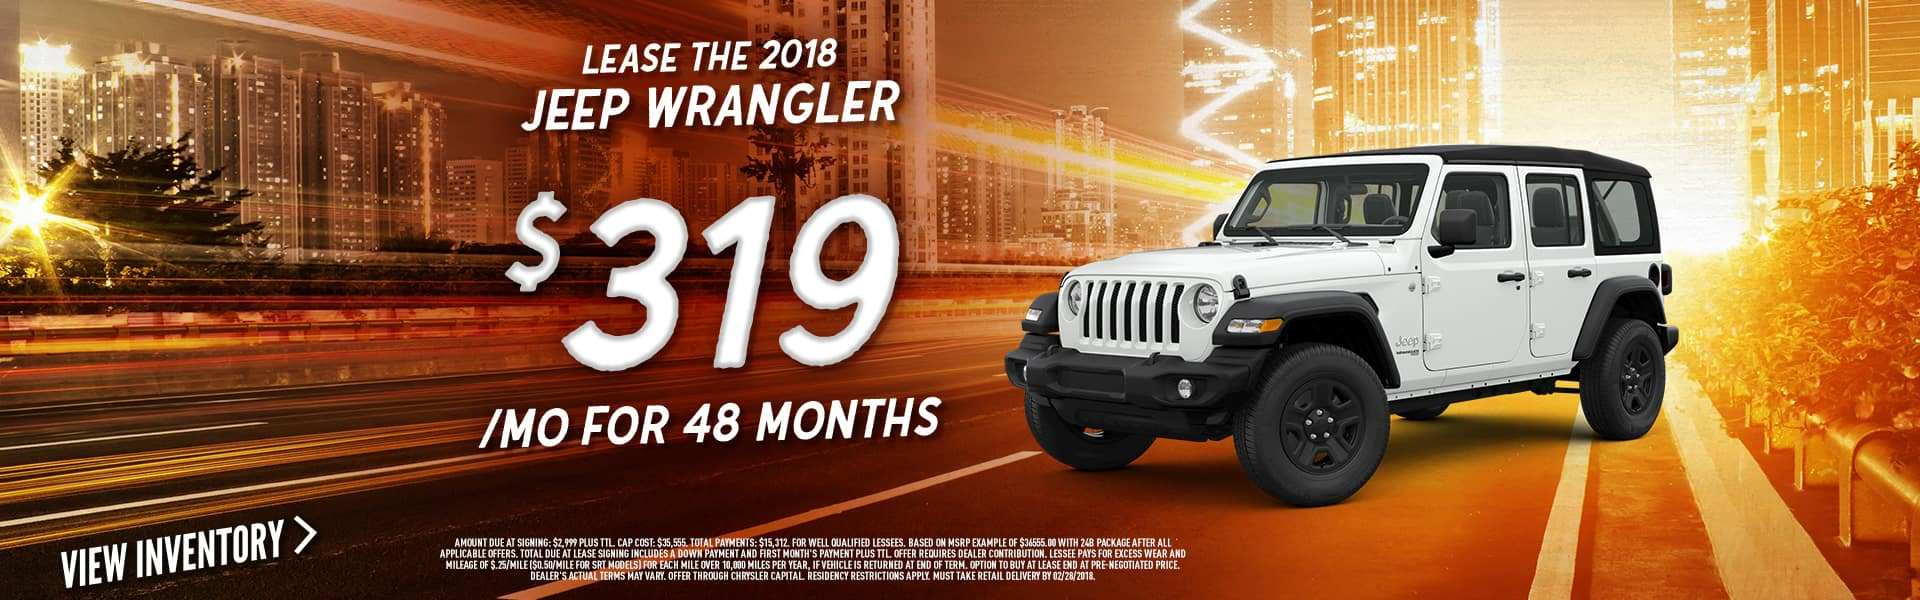 2018-jeep-wrangler-beaumont-tx